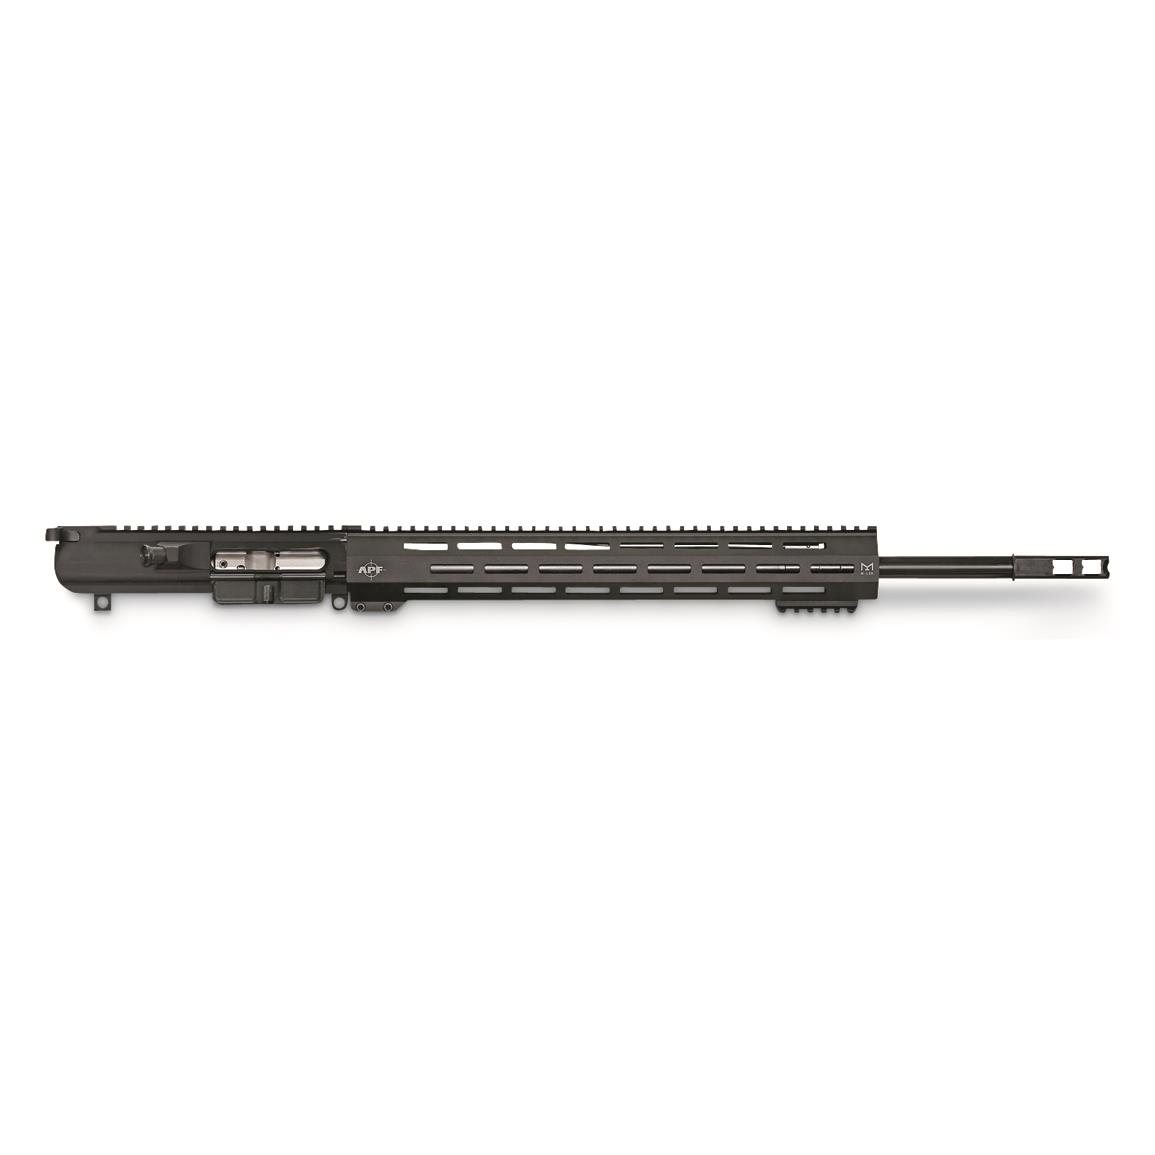 "APF 308 Target .308 Win./7.62 NATO Complete Upper Receiver, 20"" Stainless Barrel"